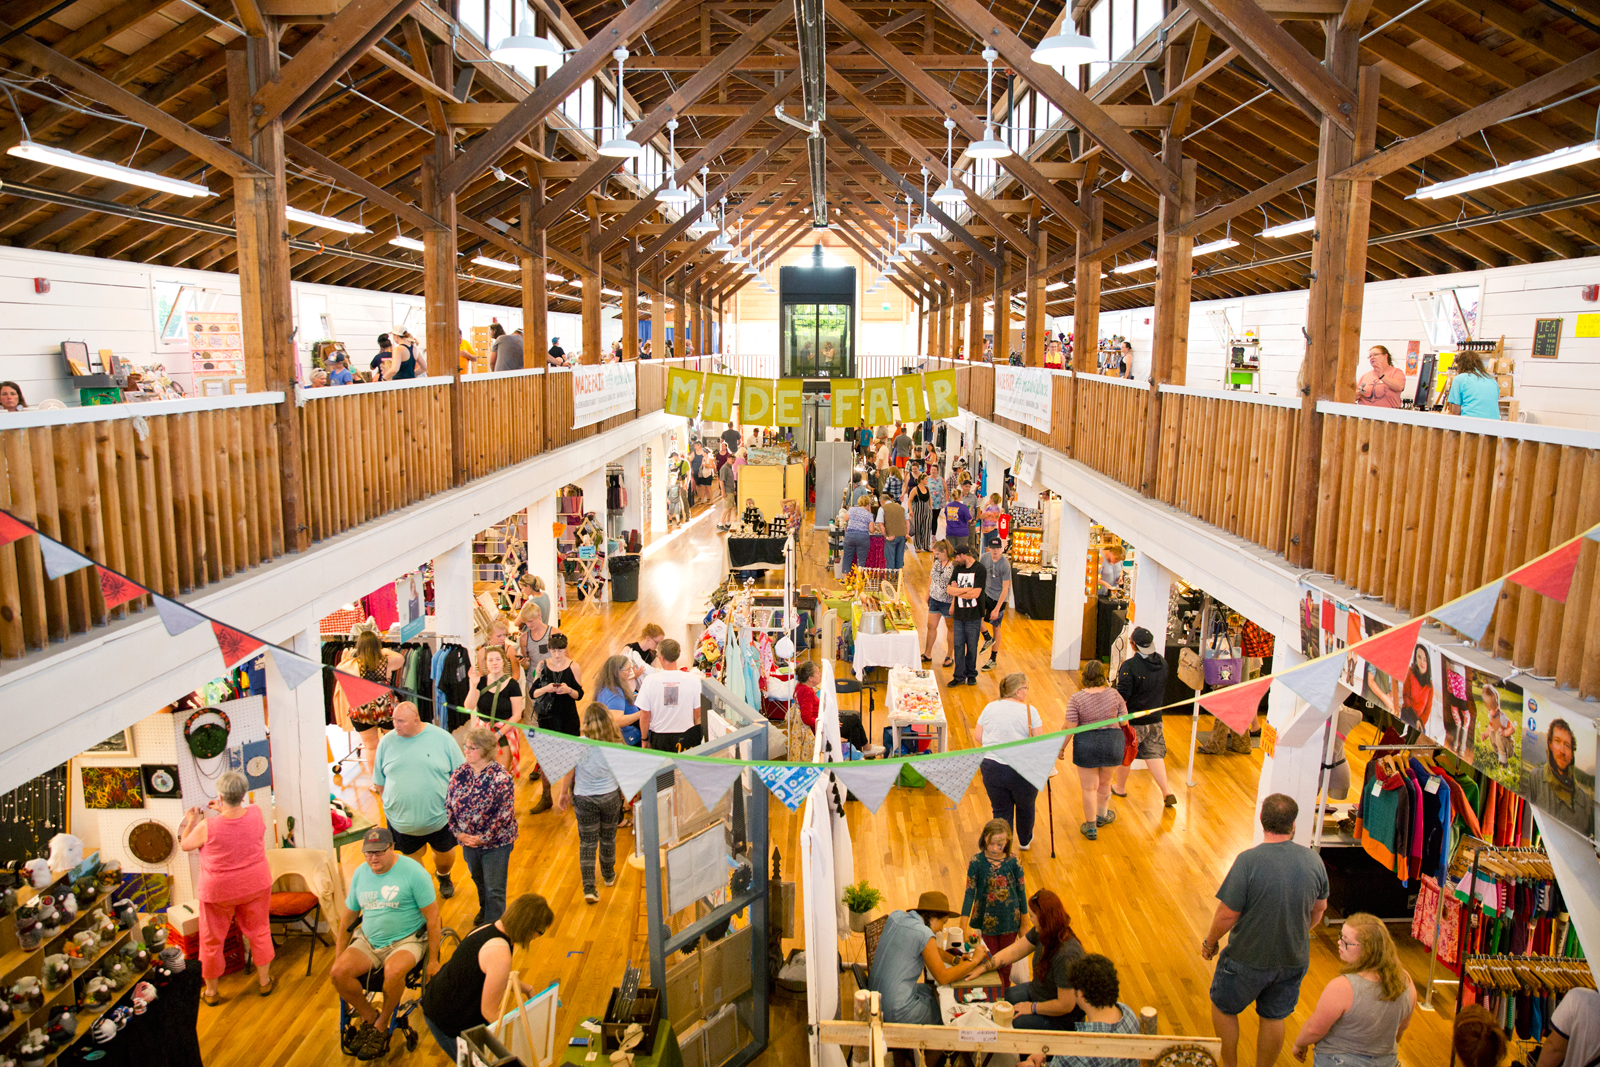 Photo by Bess Bird. The Made Fair Marketplace helped to debut the remodelled Commercial Building, filling both floors with local/handcrafted arts and goods. New elevator rear/center.